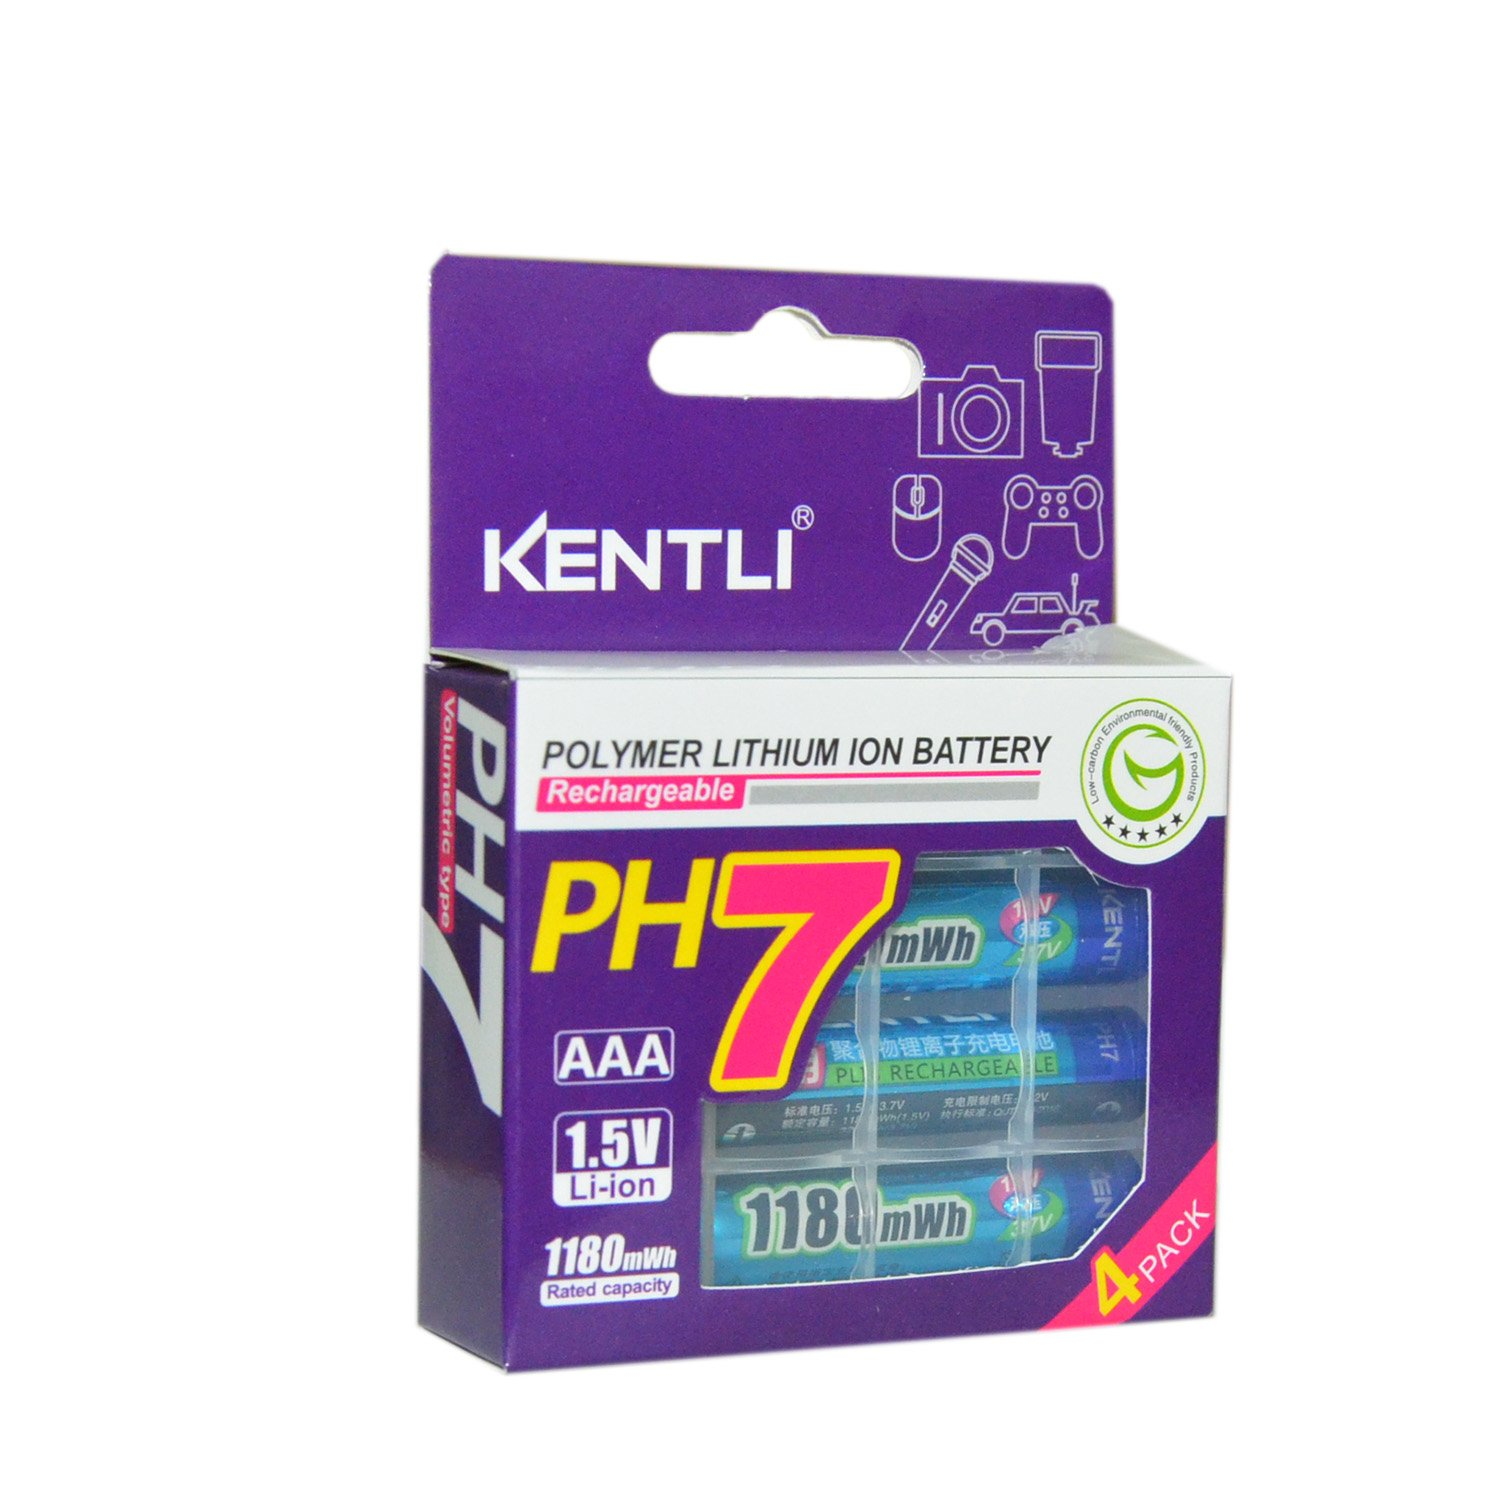 Amazon.com: KENTLI 1.5v AAA Rechargeable Battery 1180mAh ...